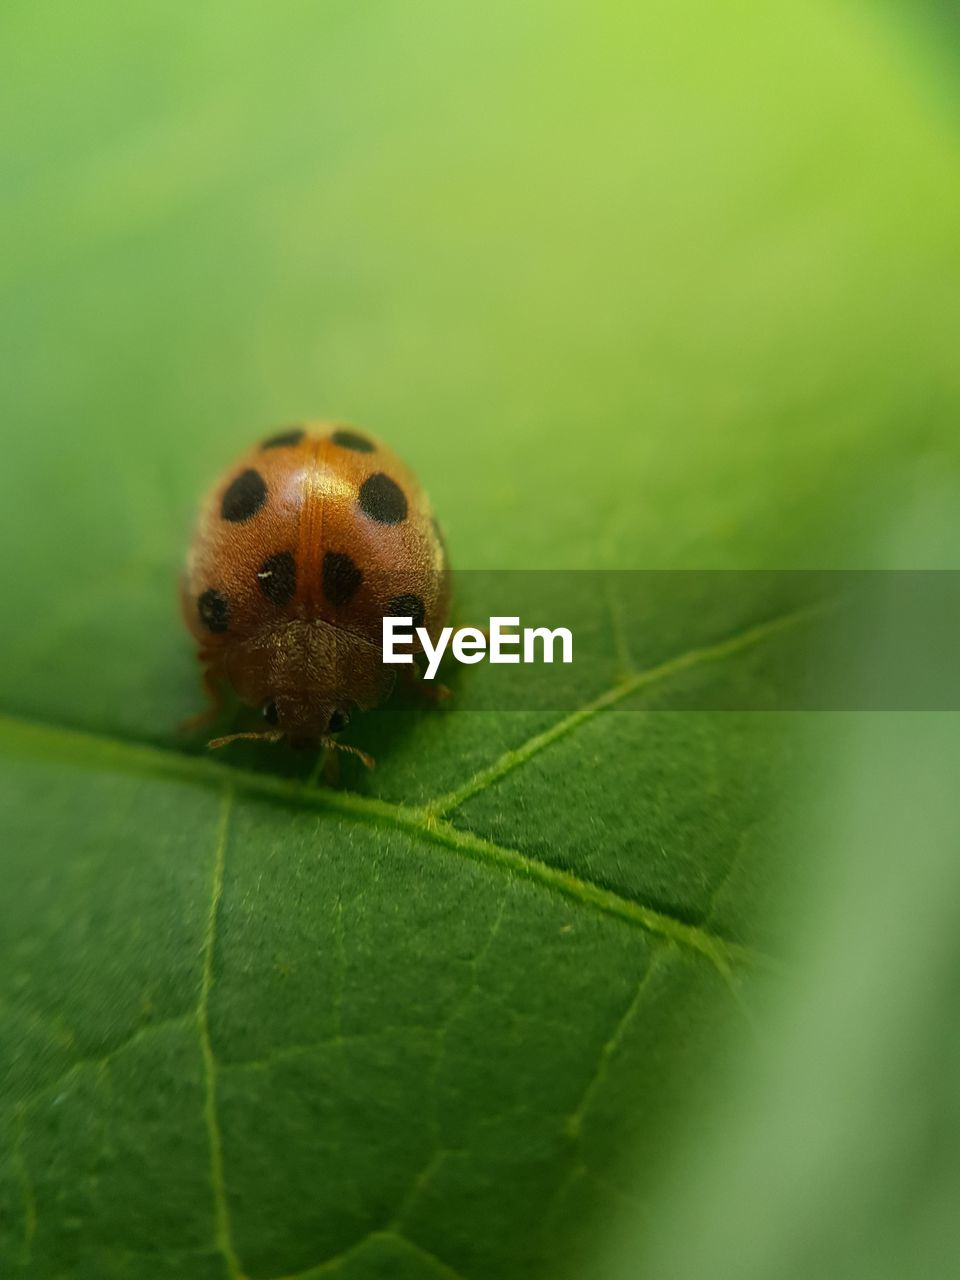 plant part, leaf, one animal, animal themes, animal, animal wildlife, animals in the wild, beetle, insect, green color, close-up, nature, invertebrate, ladybug, plant, day, no people, selective focus, outdoors, leaf vein, small